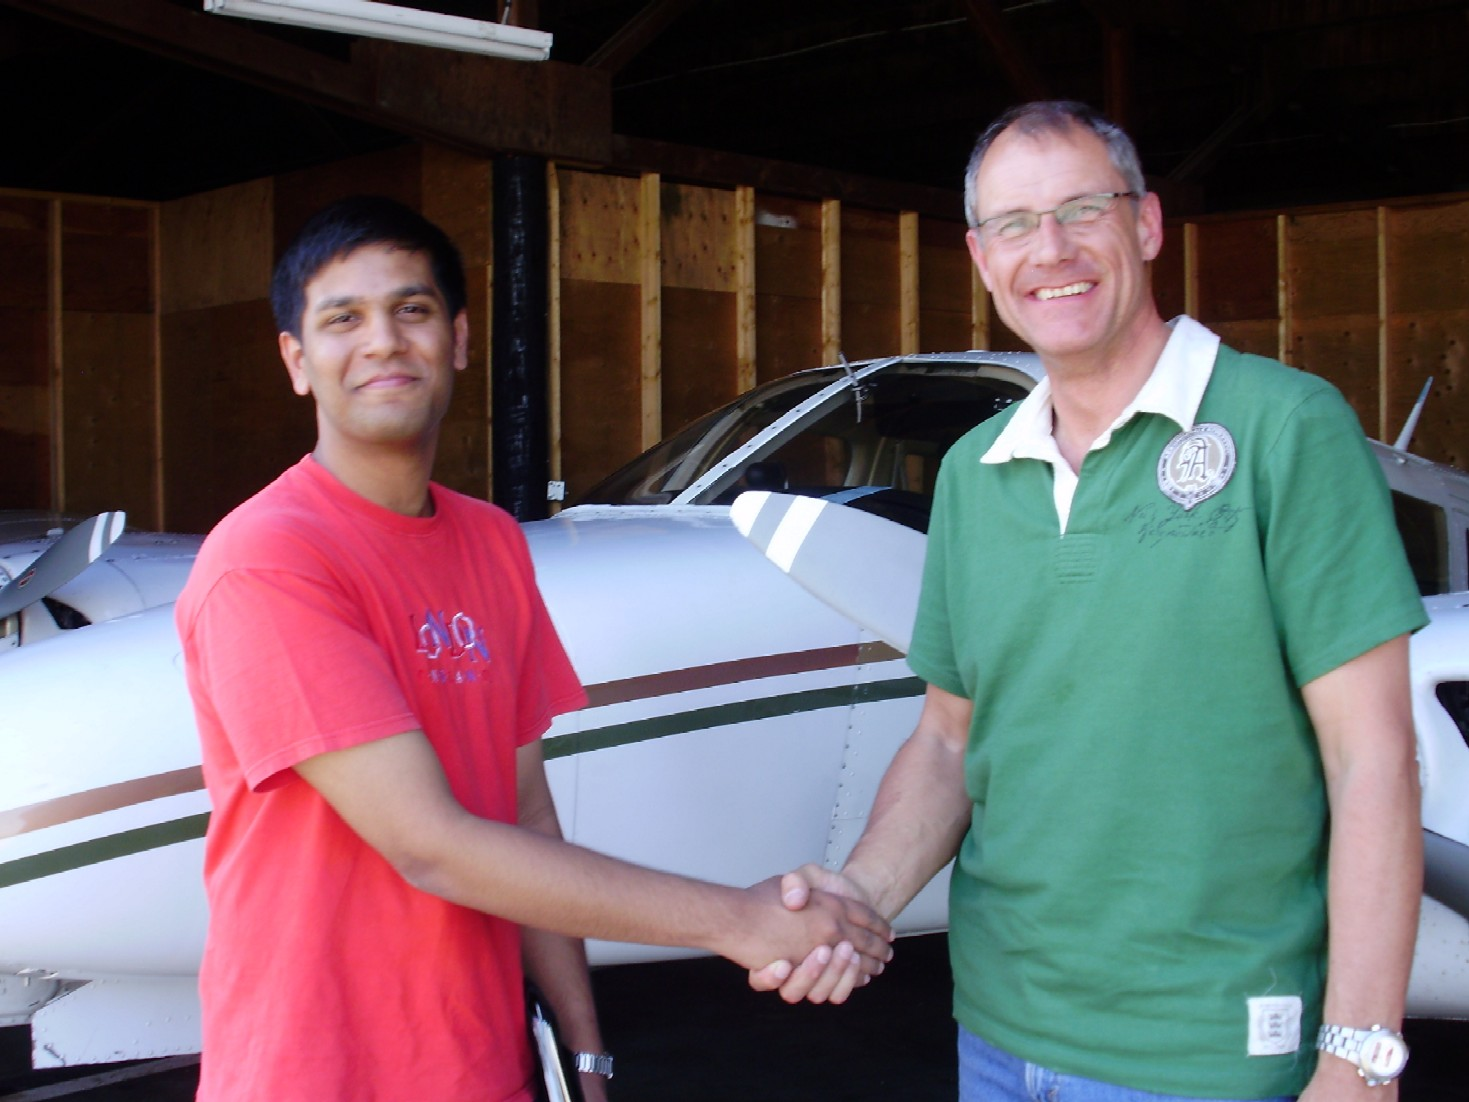 Commercial Pilot Suraj Canakapalli is congratulated by Pilot Examiner Matt Edwards after the successful completion of Suraj's Multi-engine Class Rating Flight Test on June 2, 2009.  Congrats also to Suraj's Flight Instructor Philip Craig.  Langley Flying School.